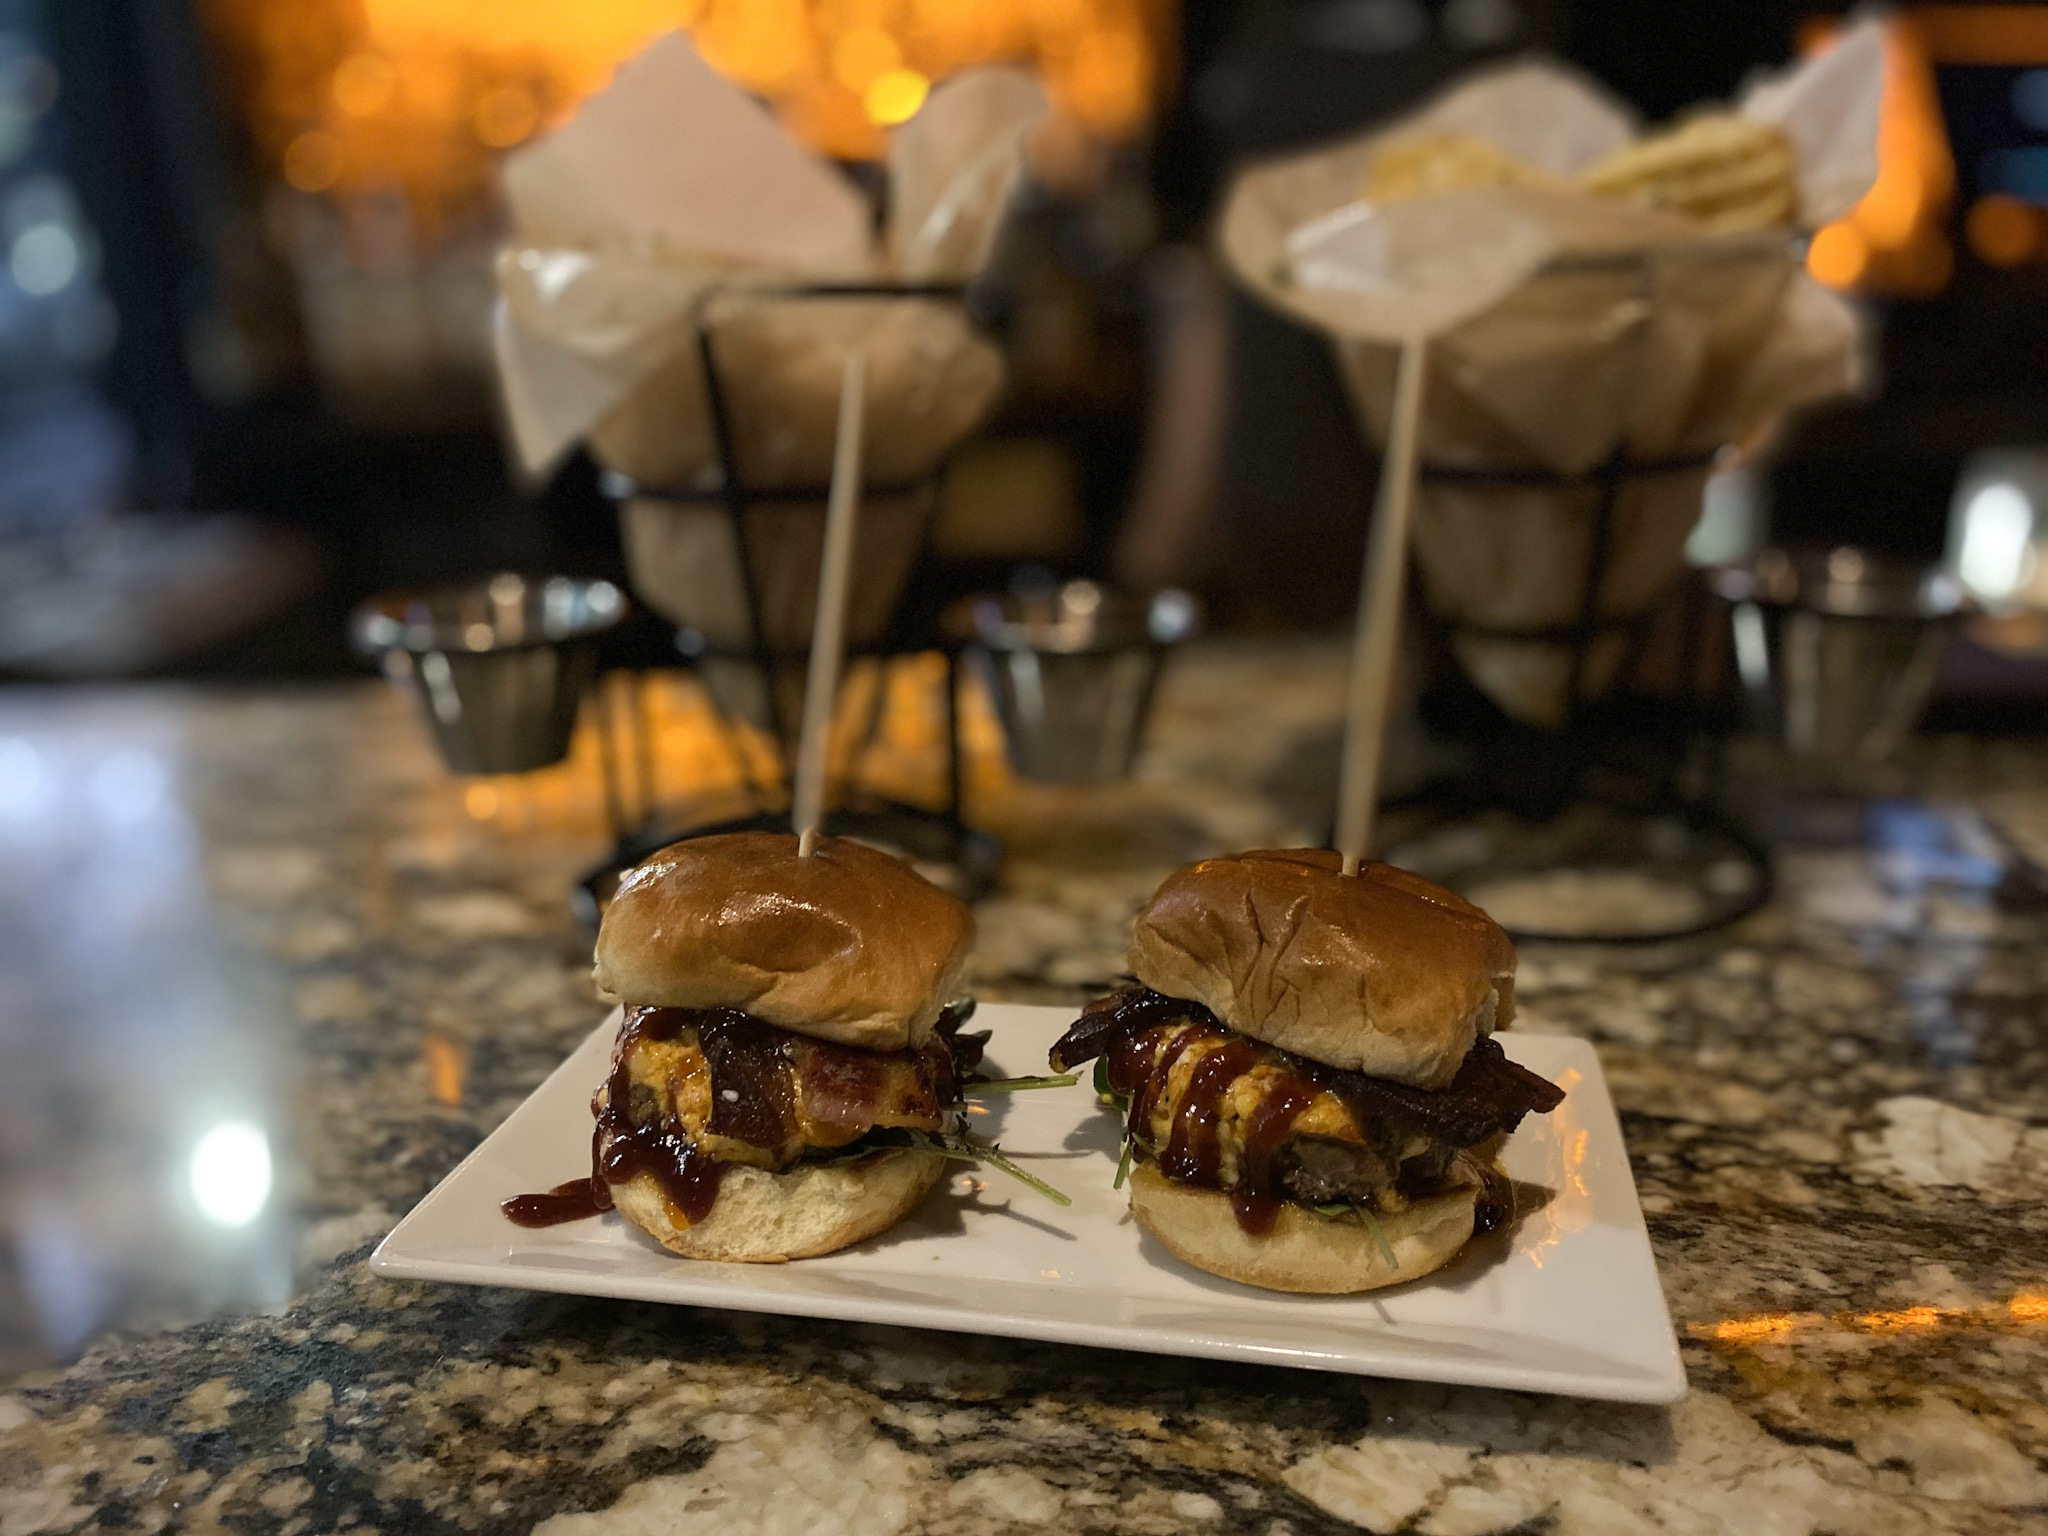 The Throwback Sliders from the happy hour menu